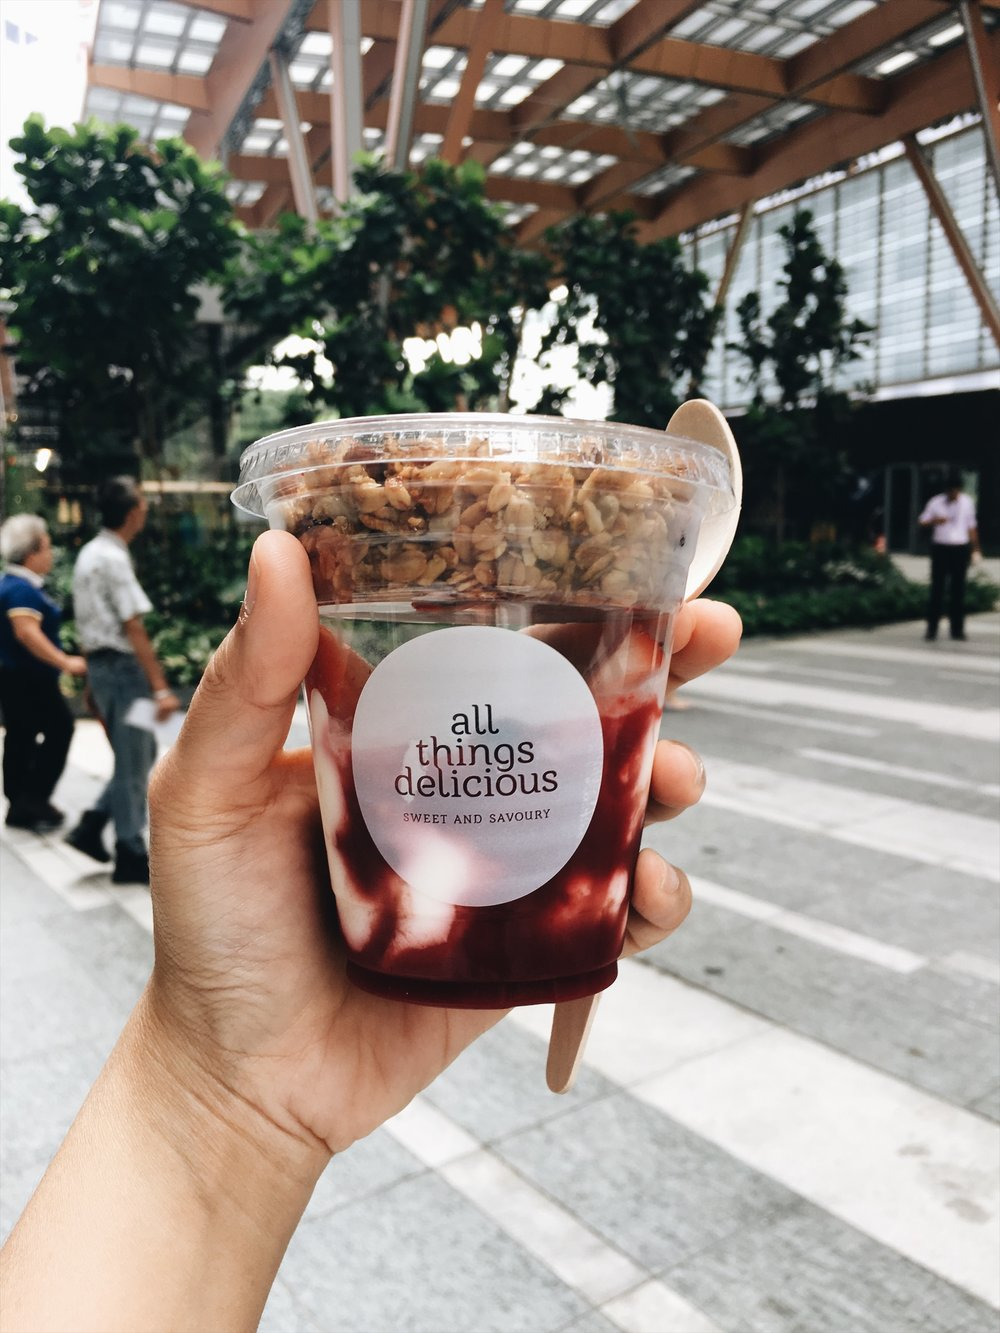 THESE YOGURT CUPS ARE TOPPED WITH MEL'S HOUSEBLEND GRANOLA TO KEEP YOU GO-GO-GOING IN THE CBD!